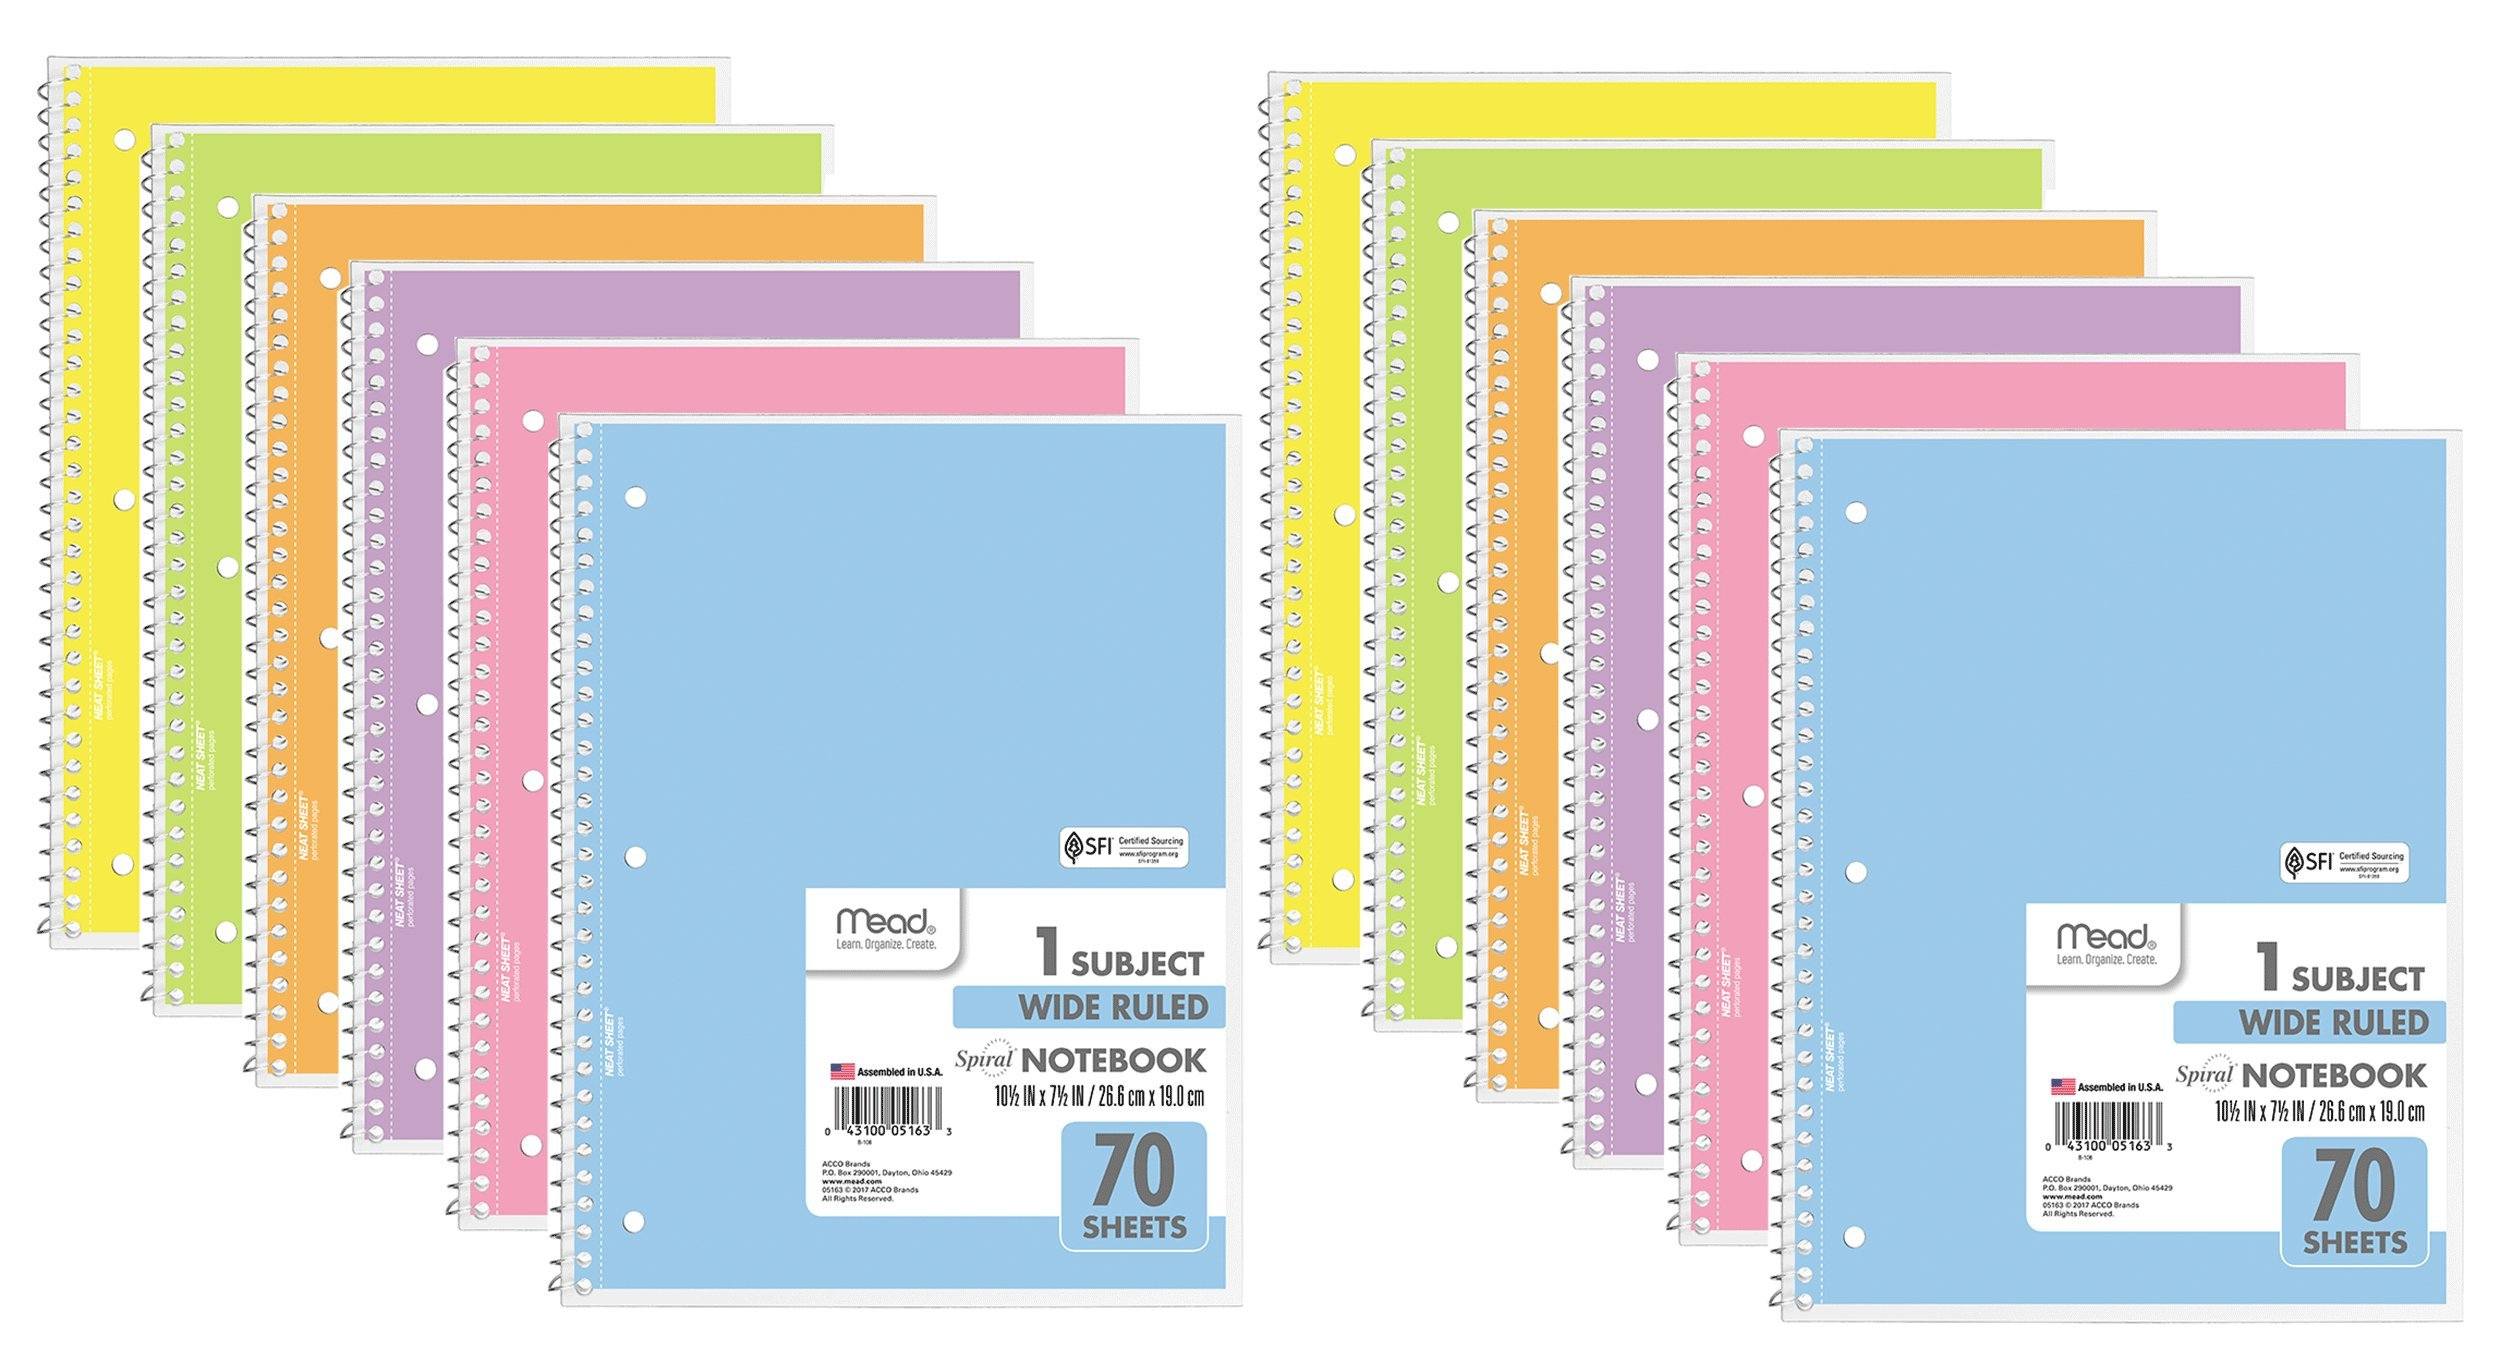 Mead Spiral Notebook, Wide Ruled, 1 Subject, Assorted Pastel Colors, 12 Pack